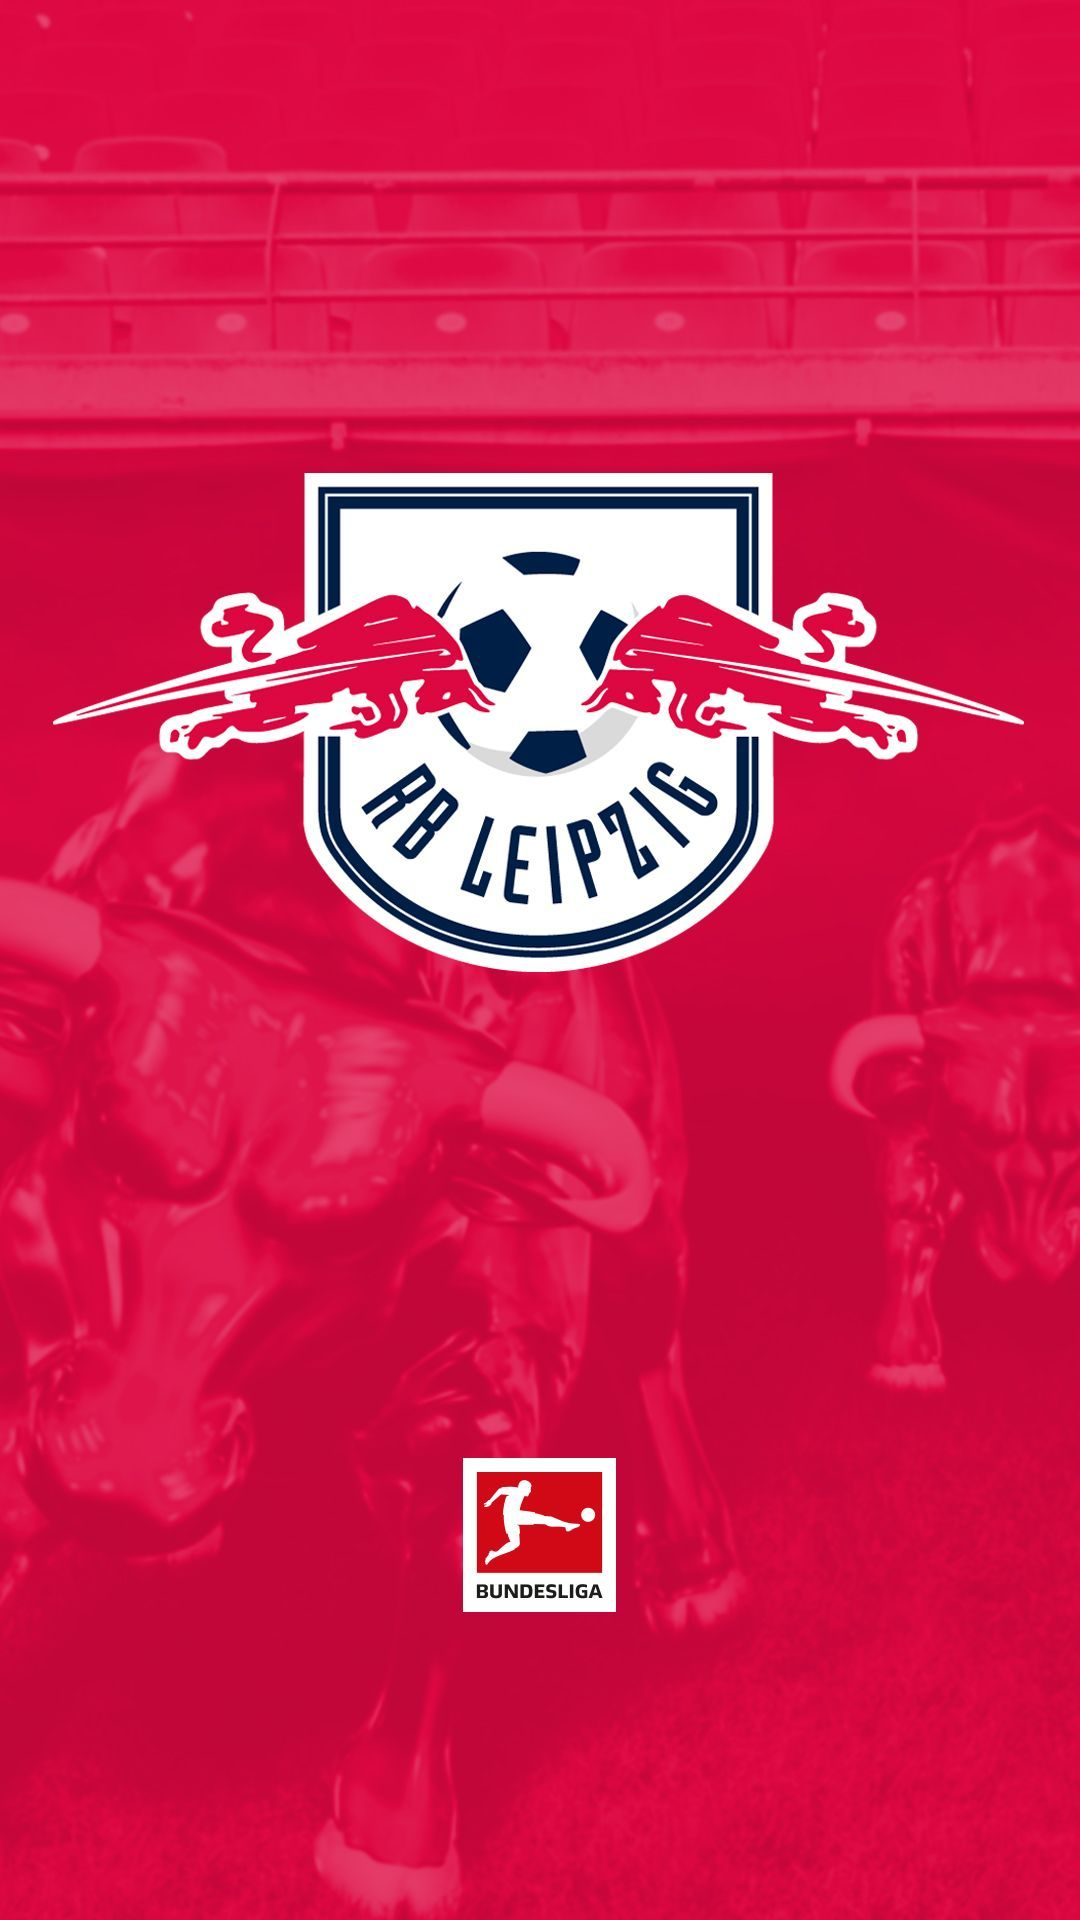 Bundesliga Download Your Free Bundesliga Club Wallpaper To Your Phone Rb Leipzig German National Team Wallpaper